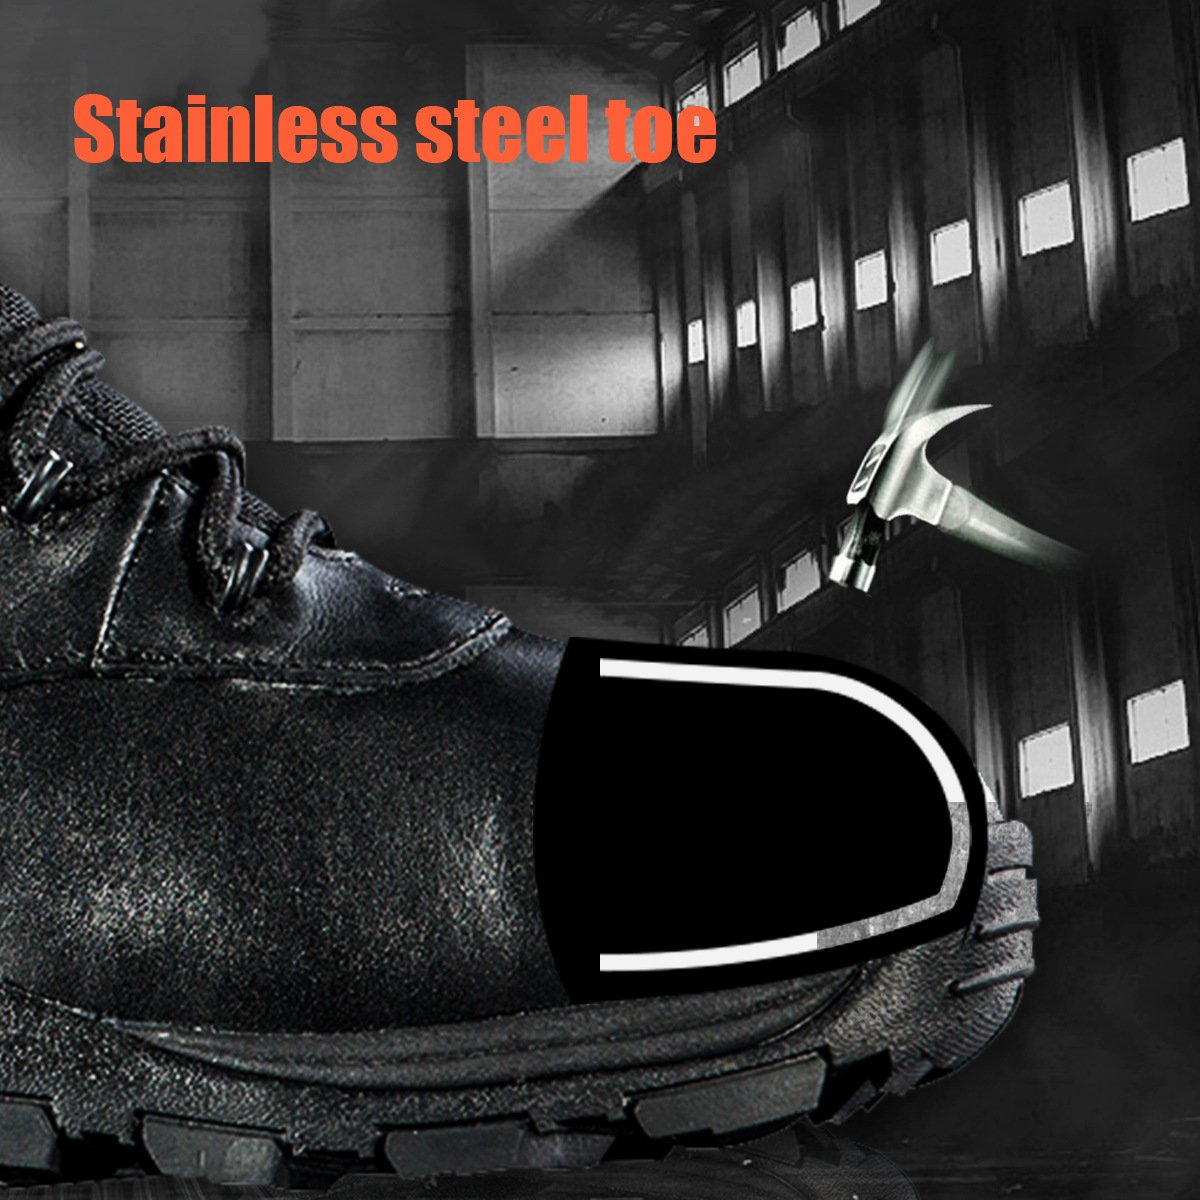 Steel Toe Tactical Boots - FREE SODLIER Waterproof Shoes Penetration Resistant Composite Toe Combat Boot(Black 12.5) by FREE SOLDIER (Image #4)